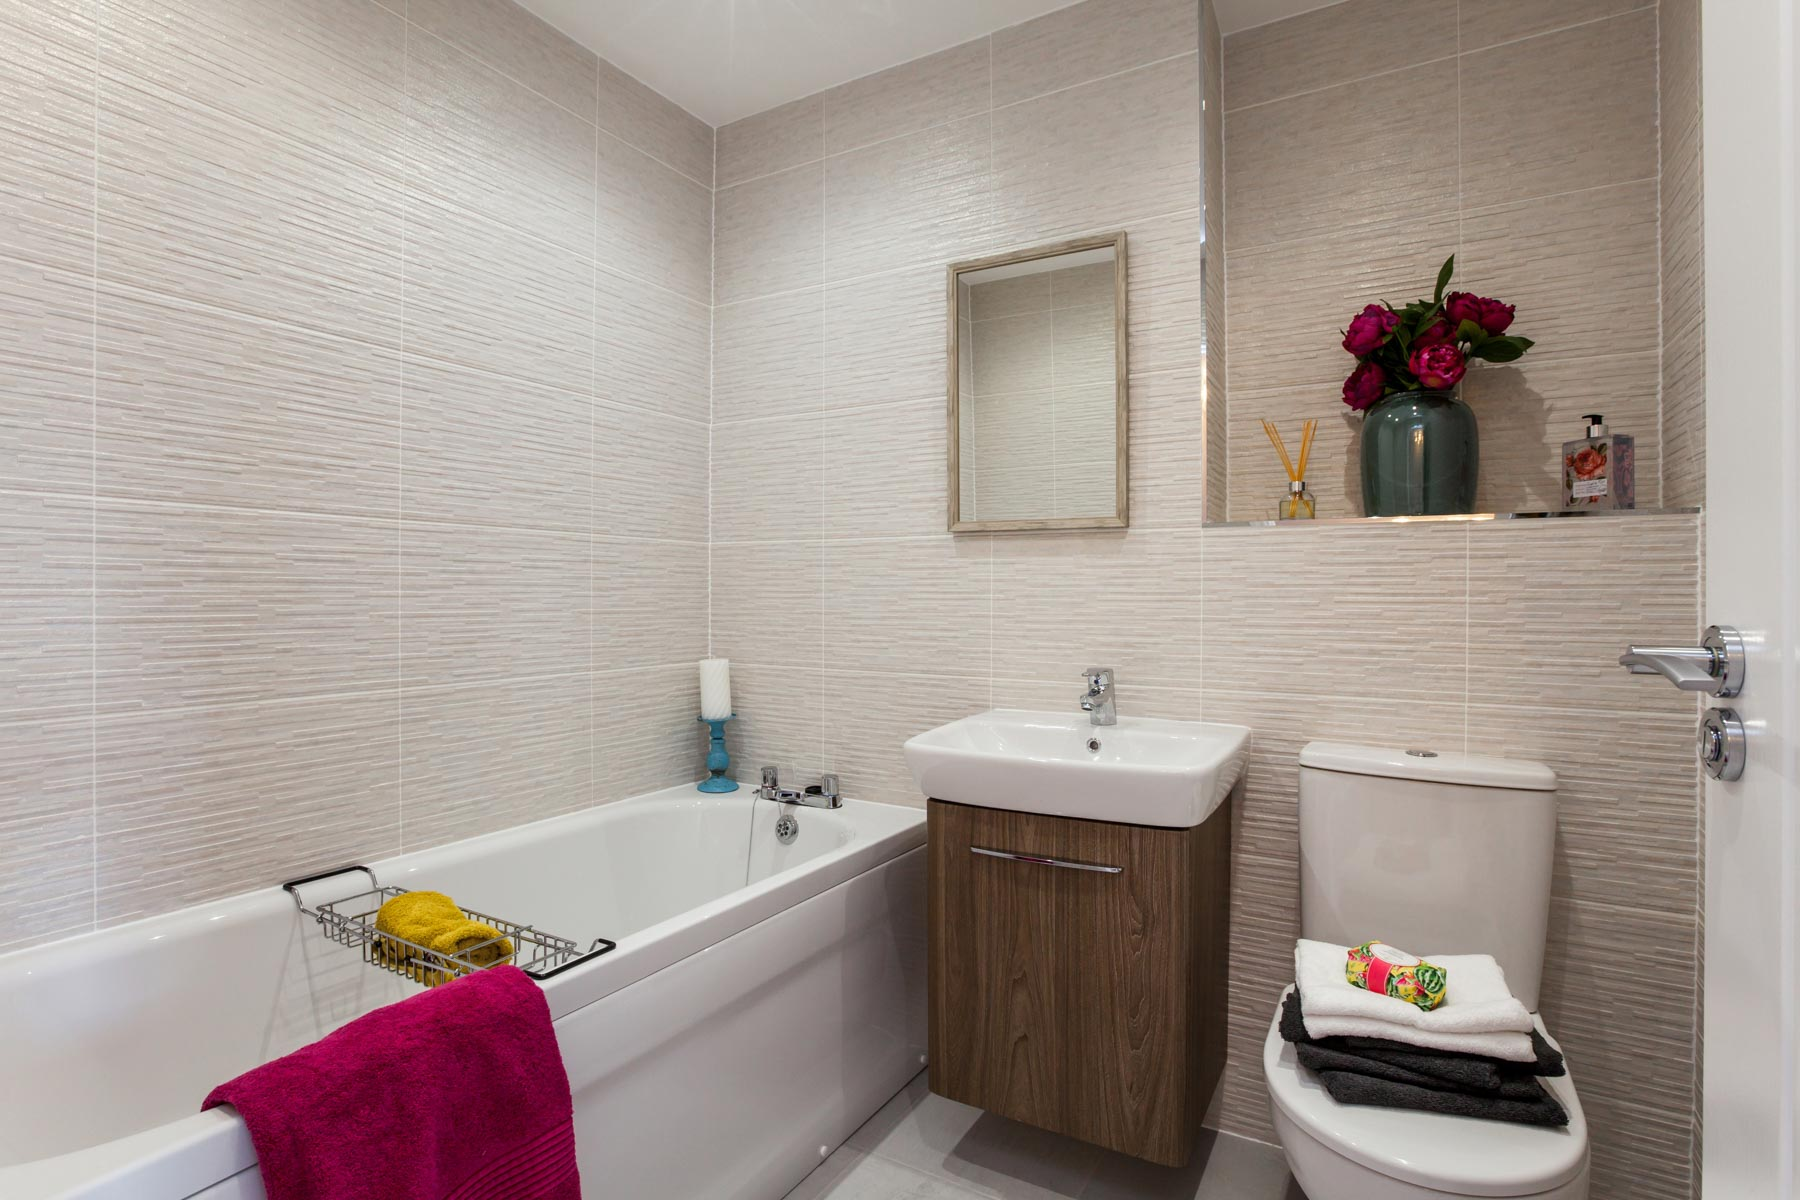 TW NY_Larkfields_PA44_Milford_Bathroom 1